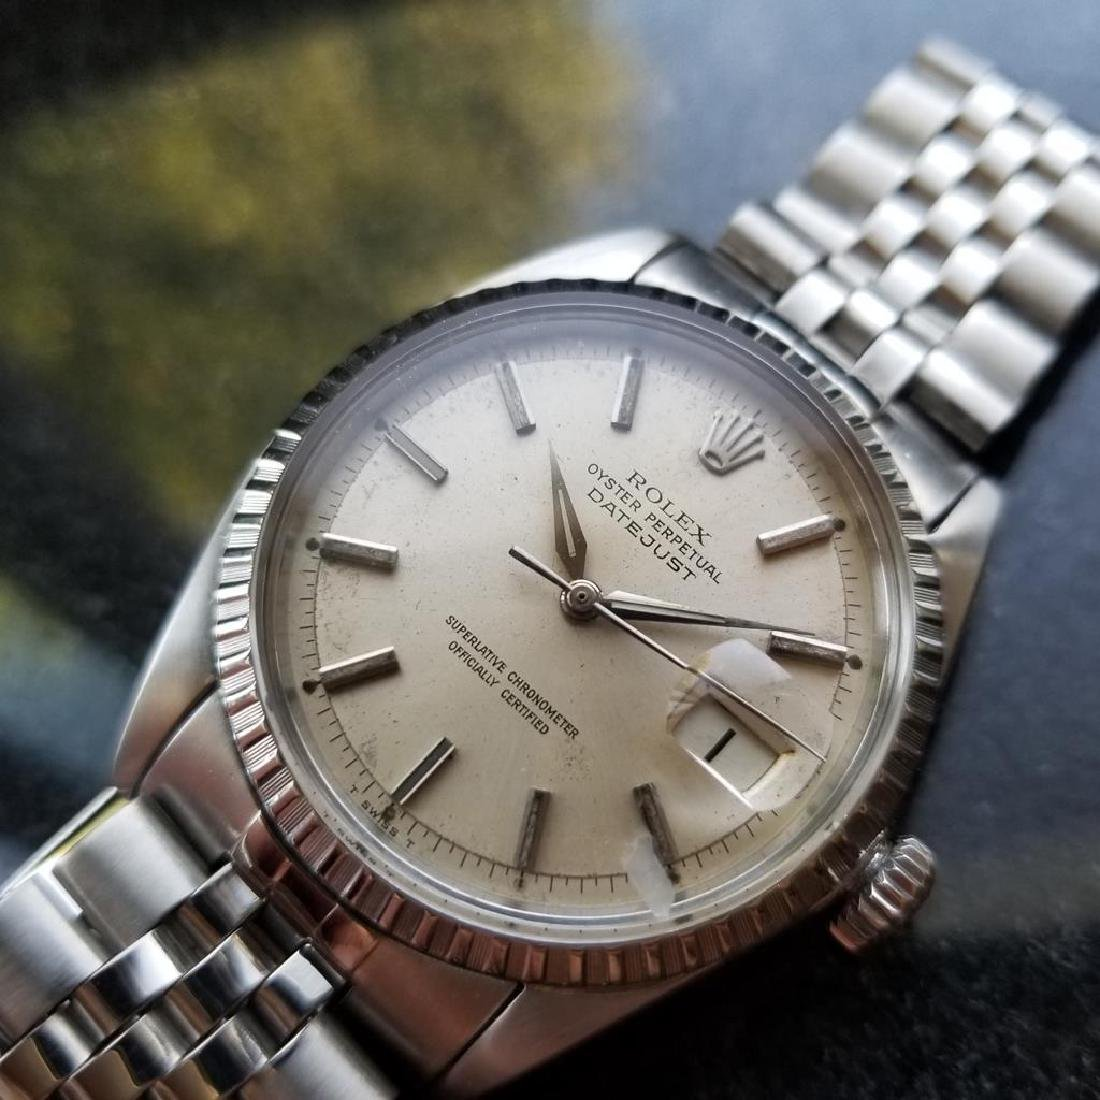 ROLEX Men's Datejust 1603 Automatic c.1965 Stainless